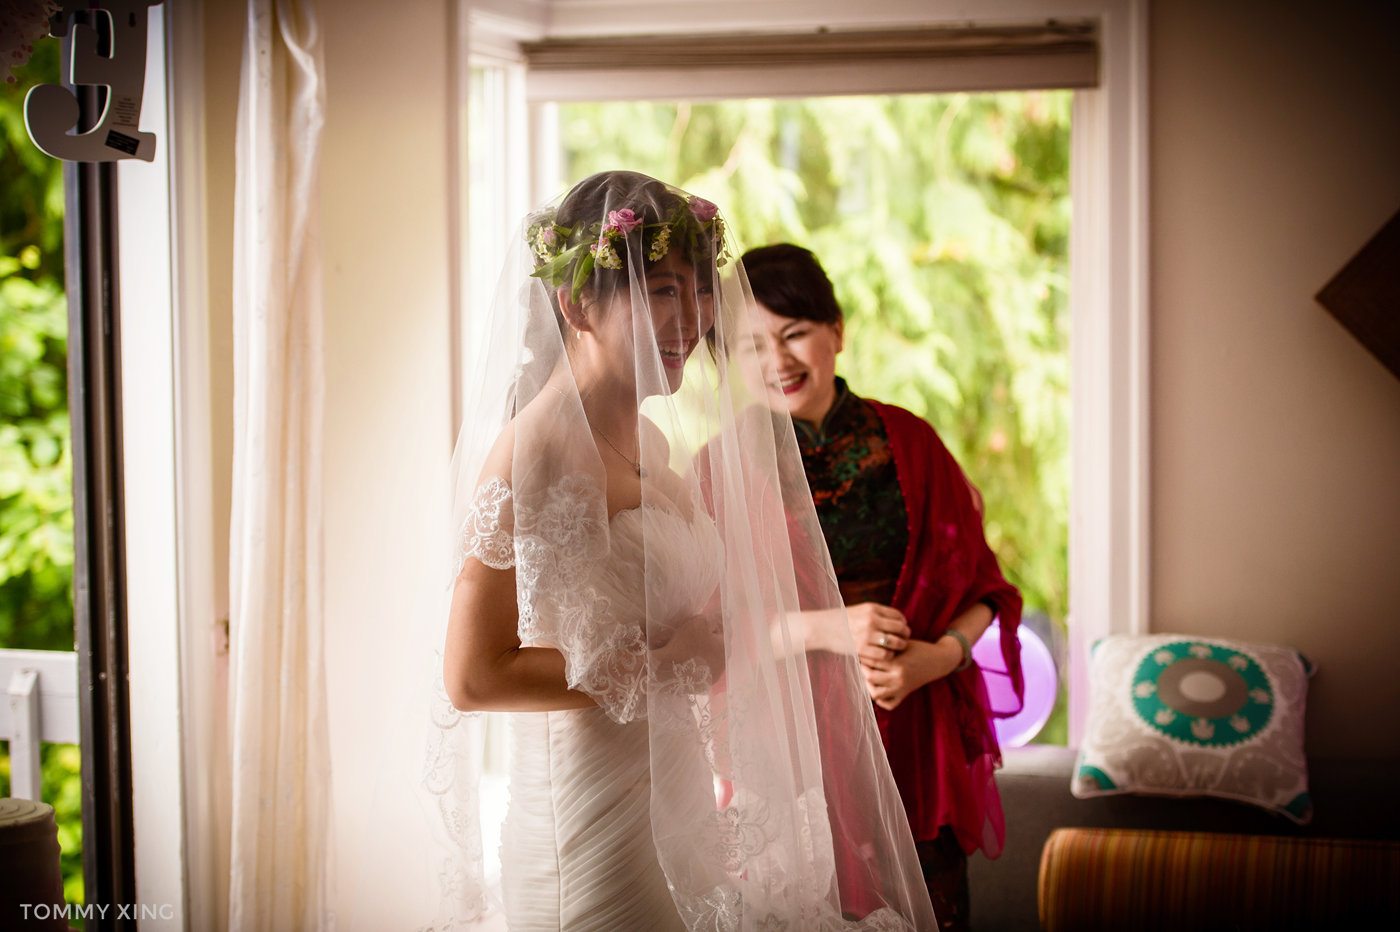 Seattle Wedding and pre wedding Los Angeles Tommy Xing Photography 西雅图洛杉矶旧金山婚礼婚纱照摄影师 036.jpg